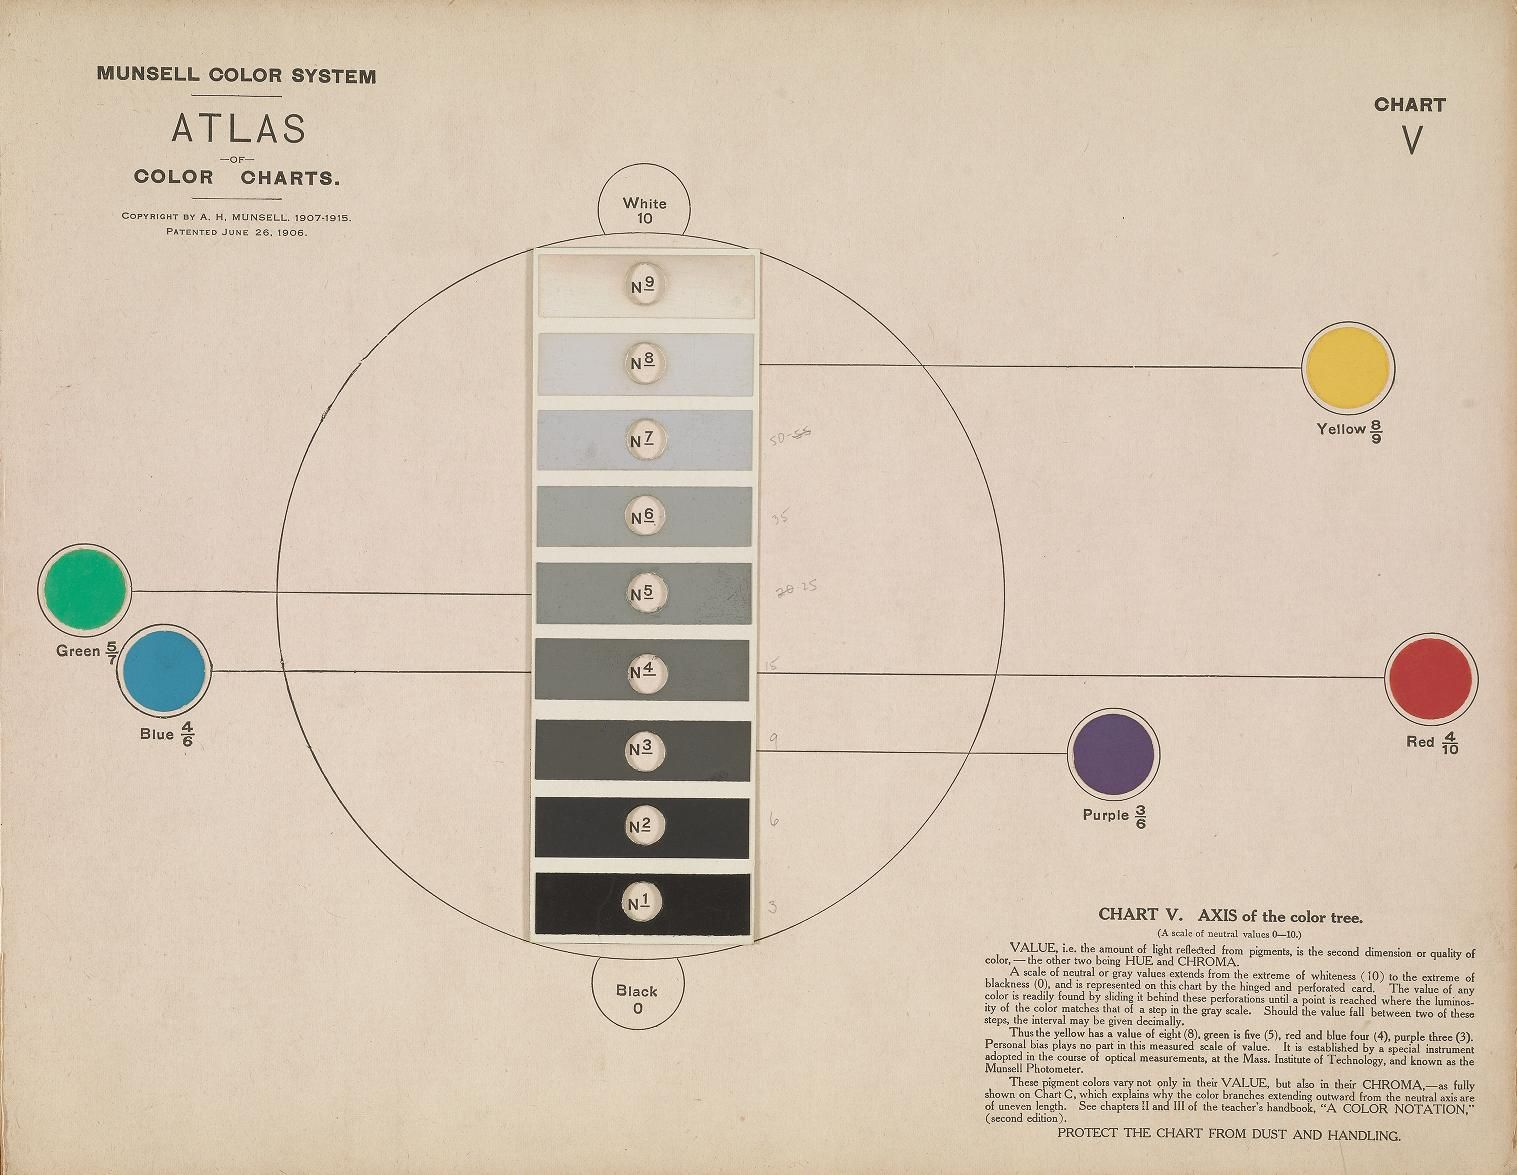 Albert h munsell atlas the munsell color system 1915gic atlas the munsell color system 1915gic transistor on tumblr colors pinterest munsell color system paintings and drawings nvjuhfo Choice Image